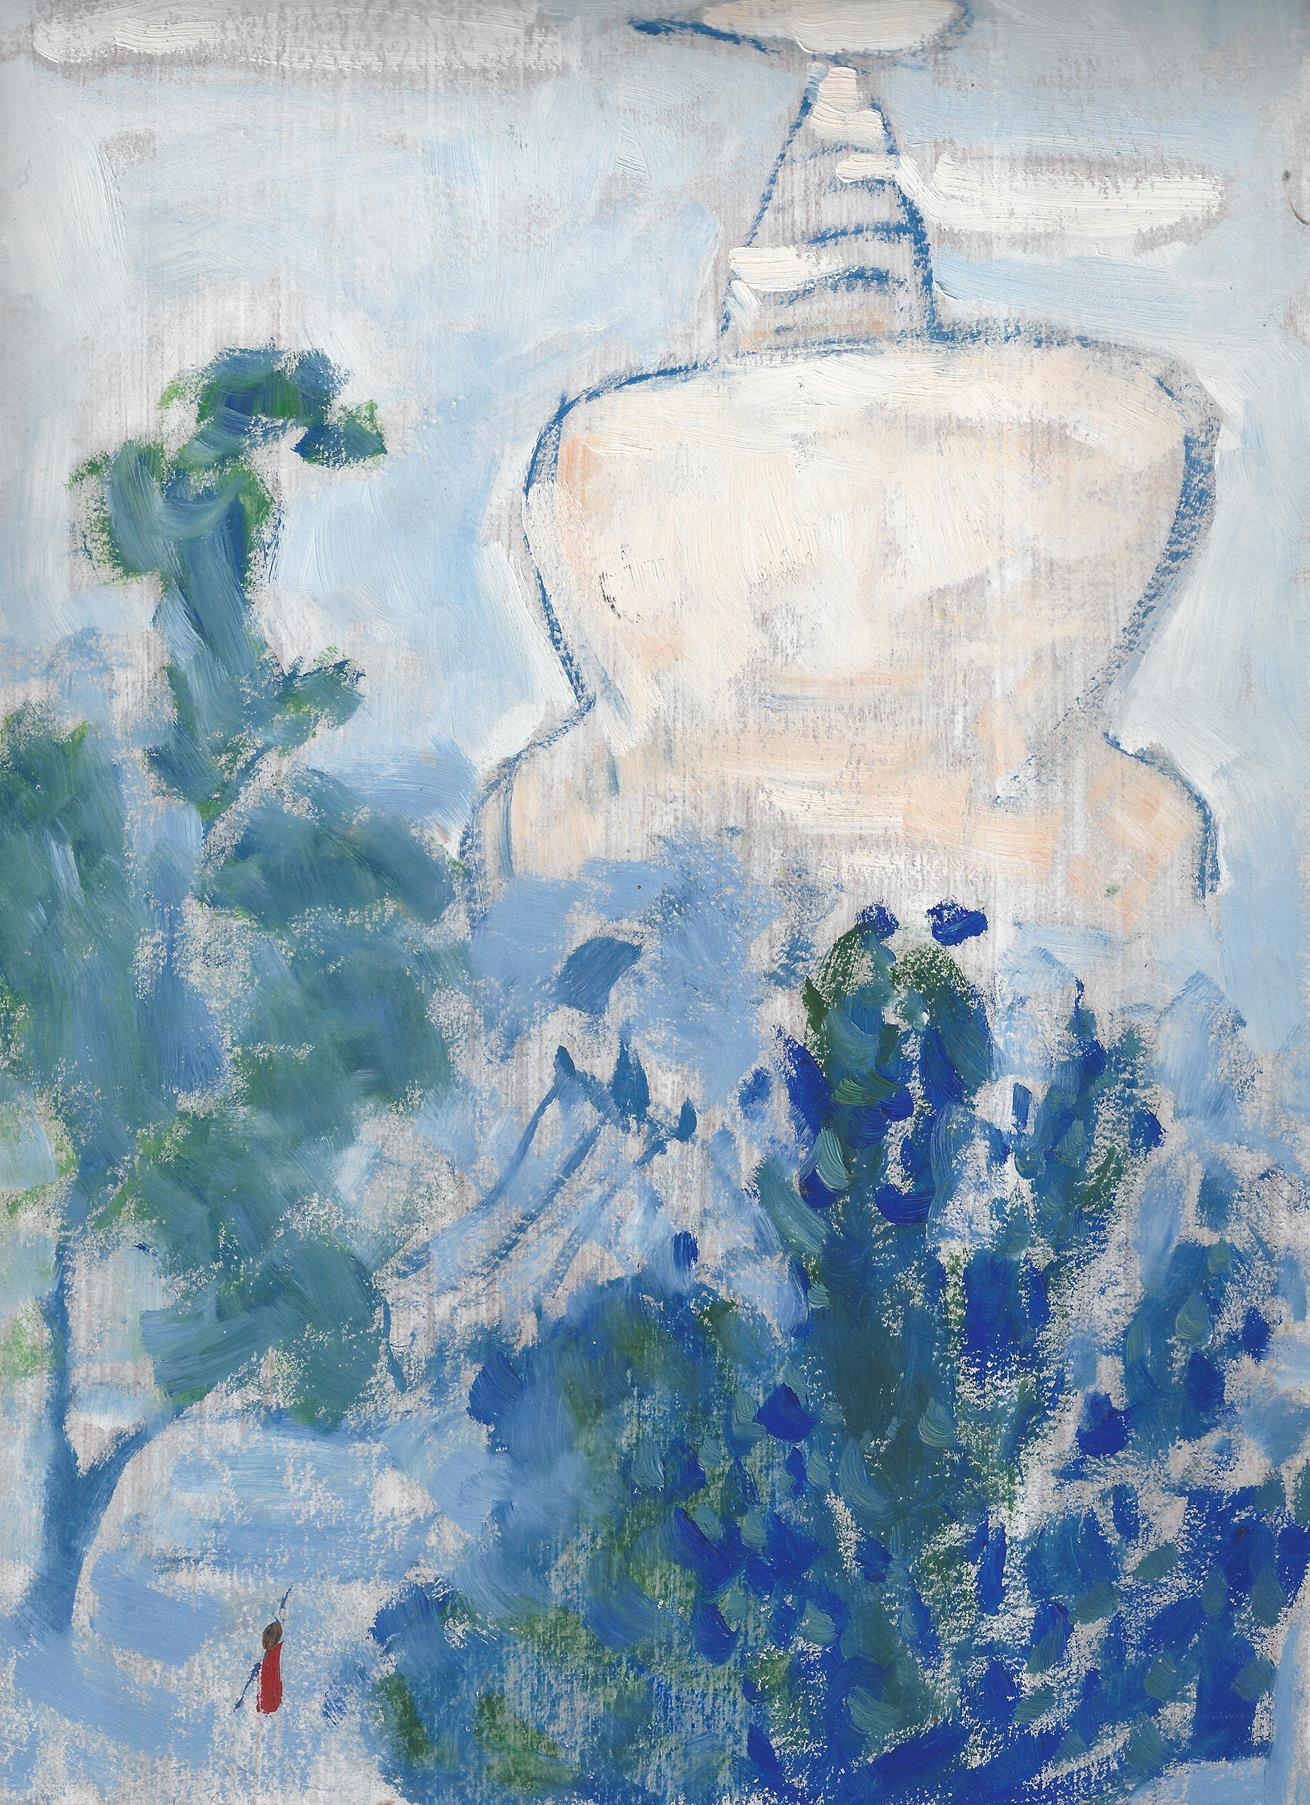 LI SHAN, The White Pagoda,Oil on paper, 李珊,白塔 , 1970s, 纸上油画 32.4 x 21.8cm, 12 3/4 x 8 5/8 inches